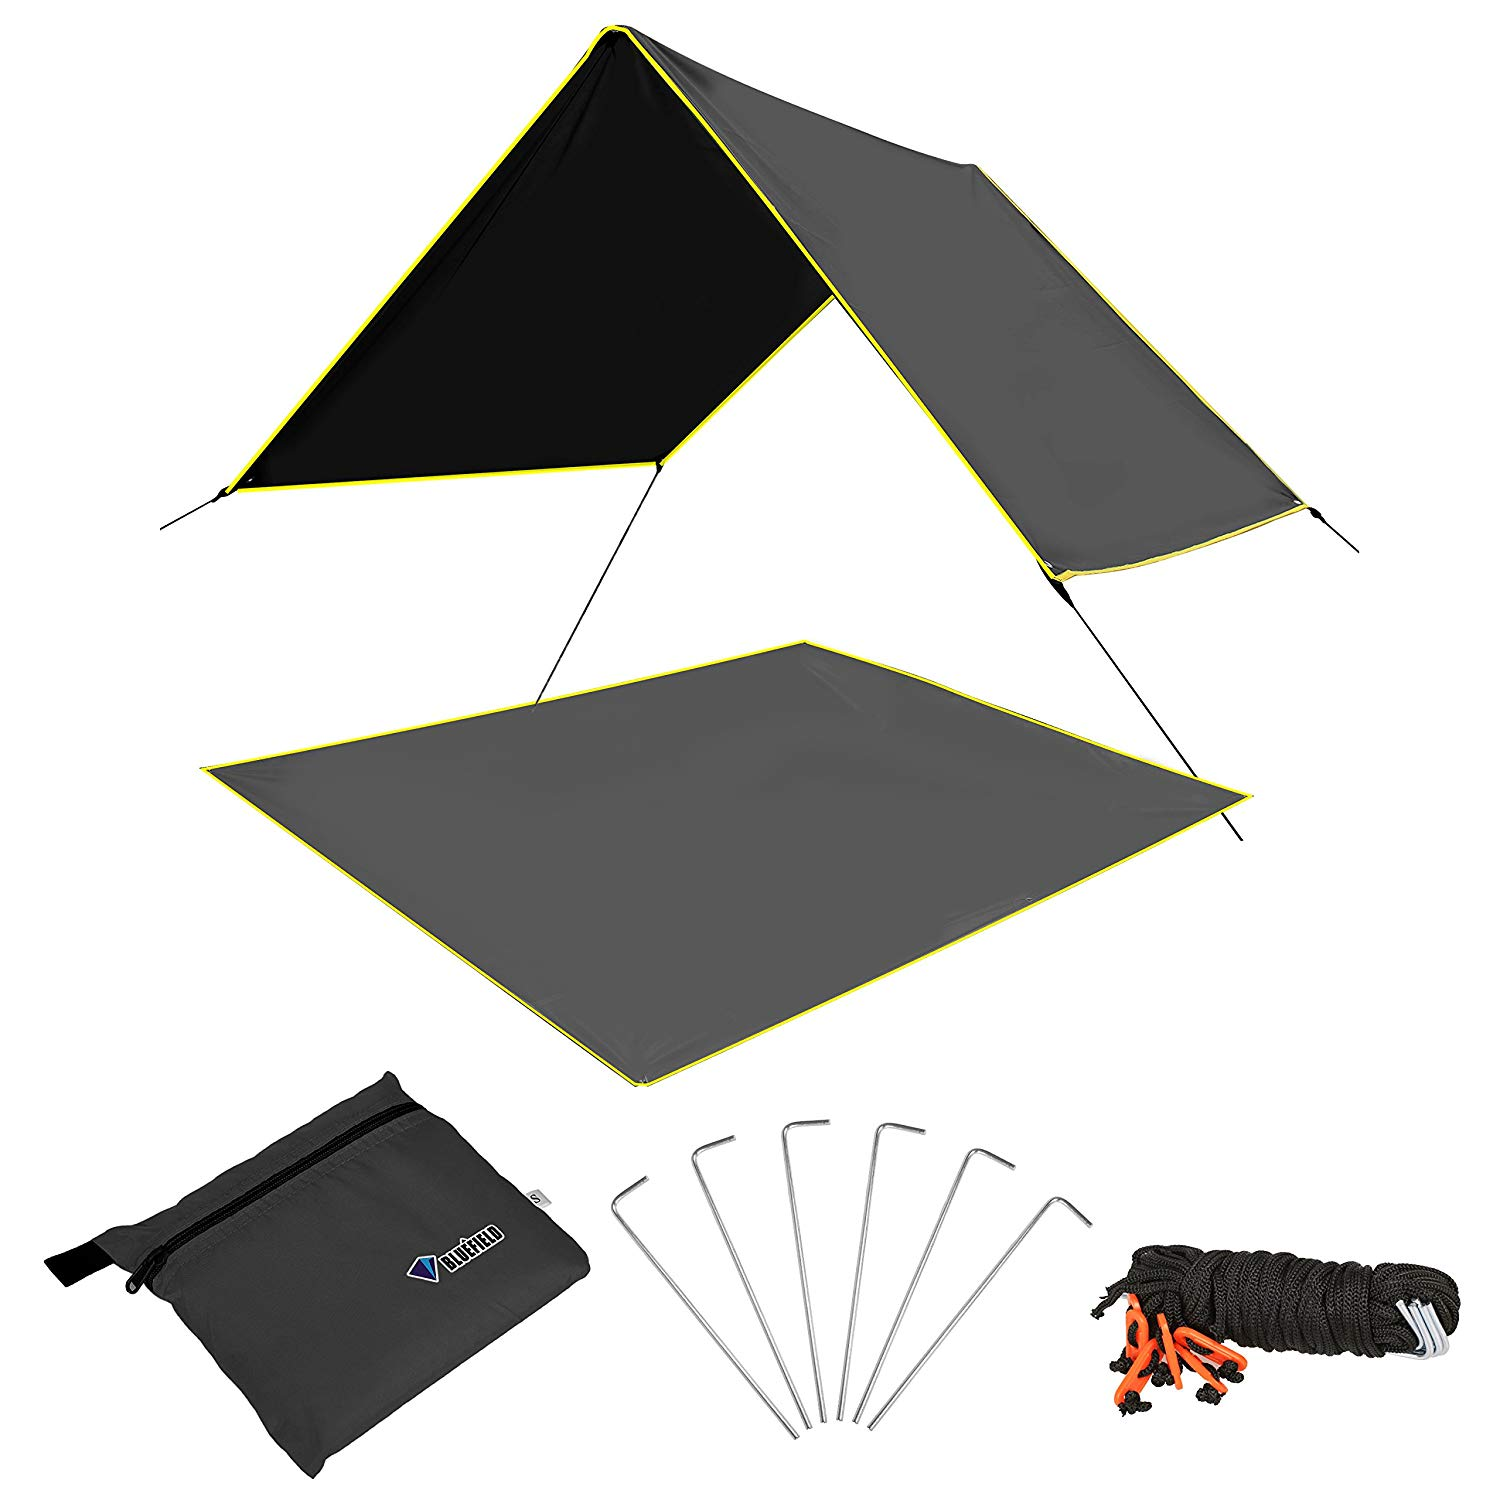 Fvino Hammock Rain Fly Waterproof Tent Tarp Camping Shelter Picnic Mat Backpacking Ground Tarp Cover Emergency Shelter with Metal Tent Stakes, Guy Lines, Carry Bag